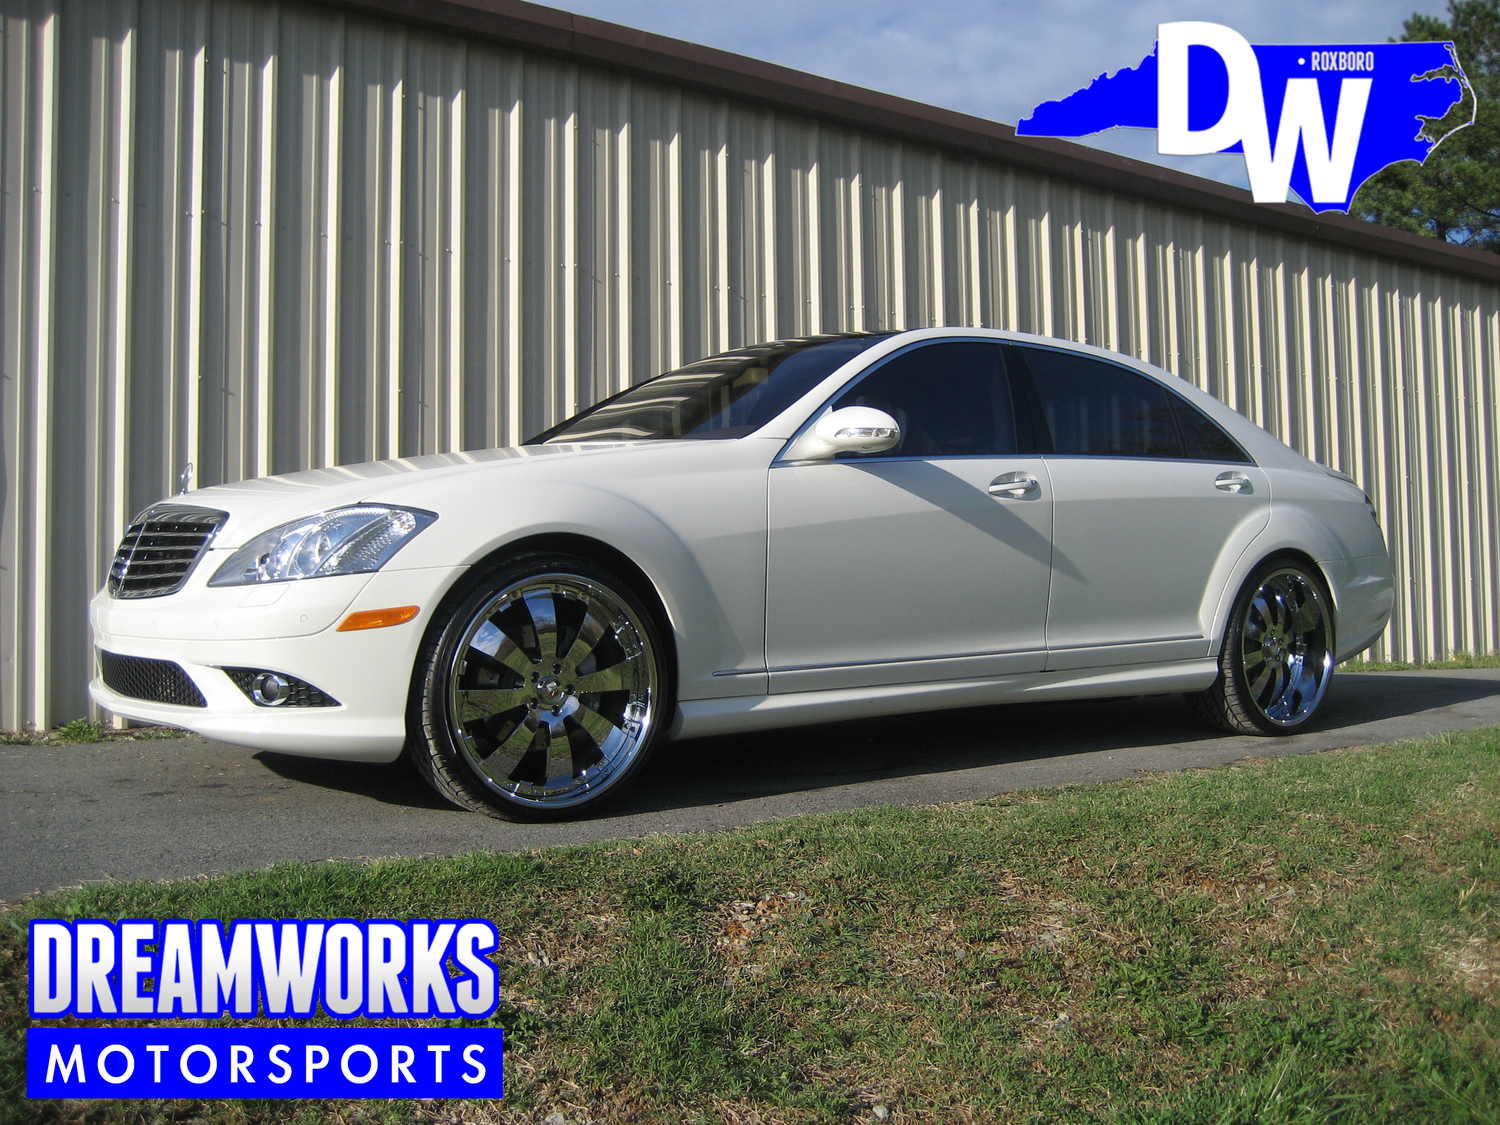 Tank-Tyler-NFL-KC-Chiefs-Carolina-Panthers-NC-State-Wolfpack-Mercedes-S550-Dreamworks-Motorsports-1.jpg